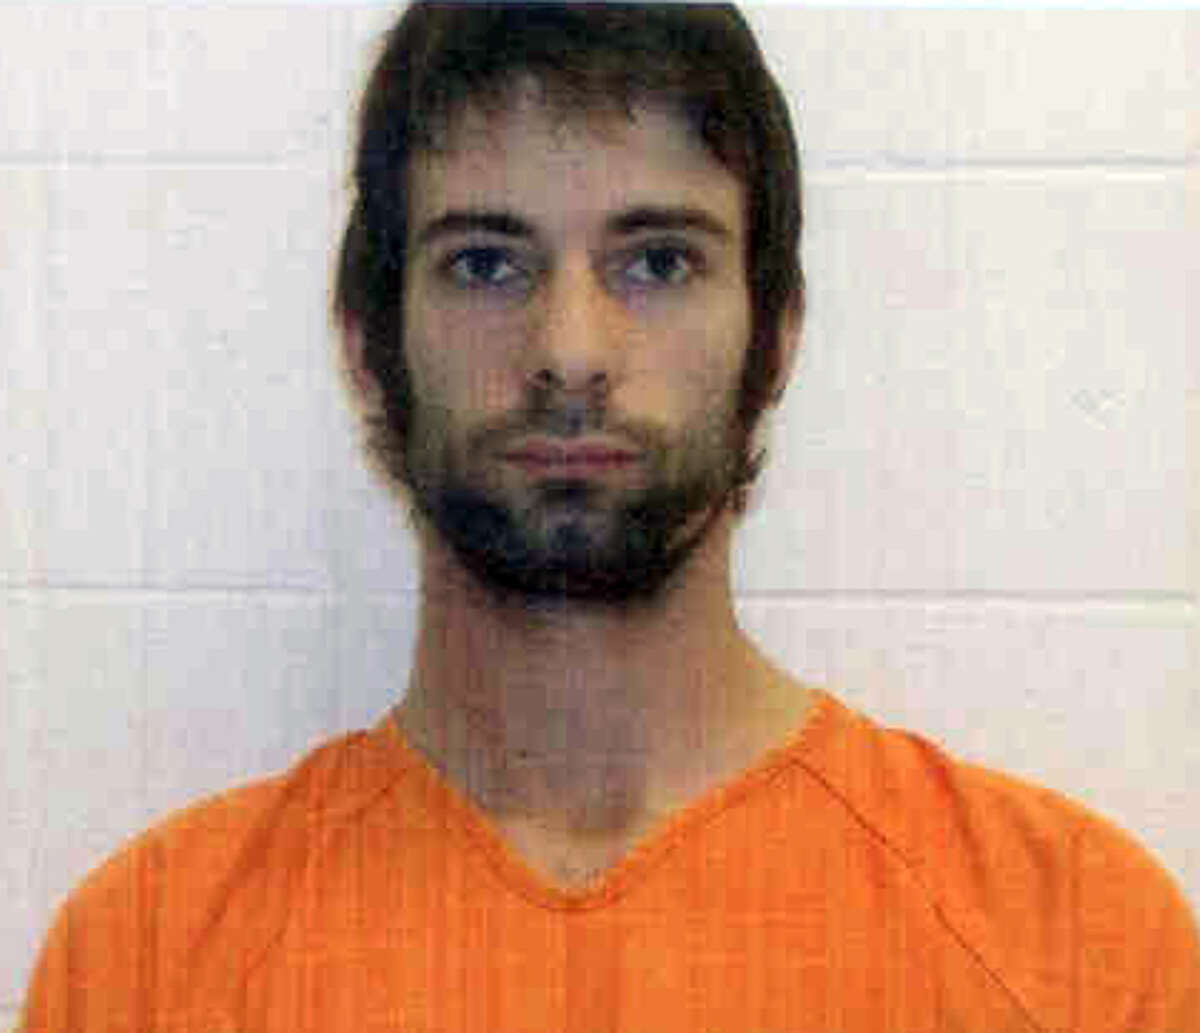 Troubled Iraq war veteran Eddie Ray Routh faces two counts of murder. (AP Photo/ Erath County Sheriff's Office)